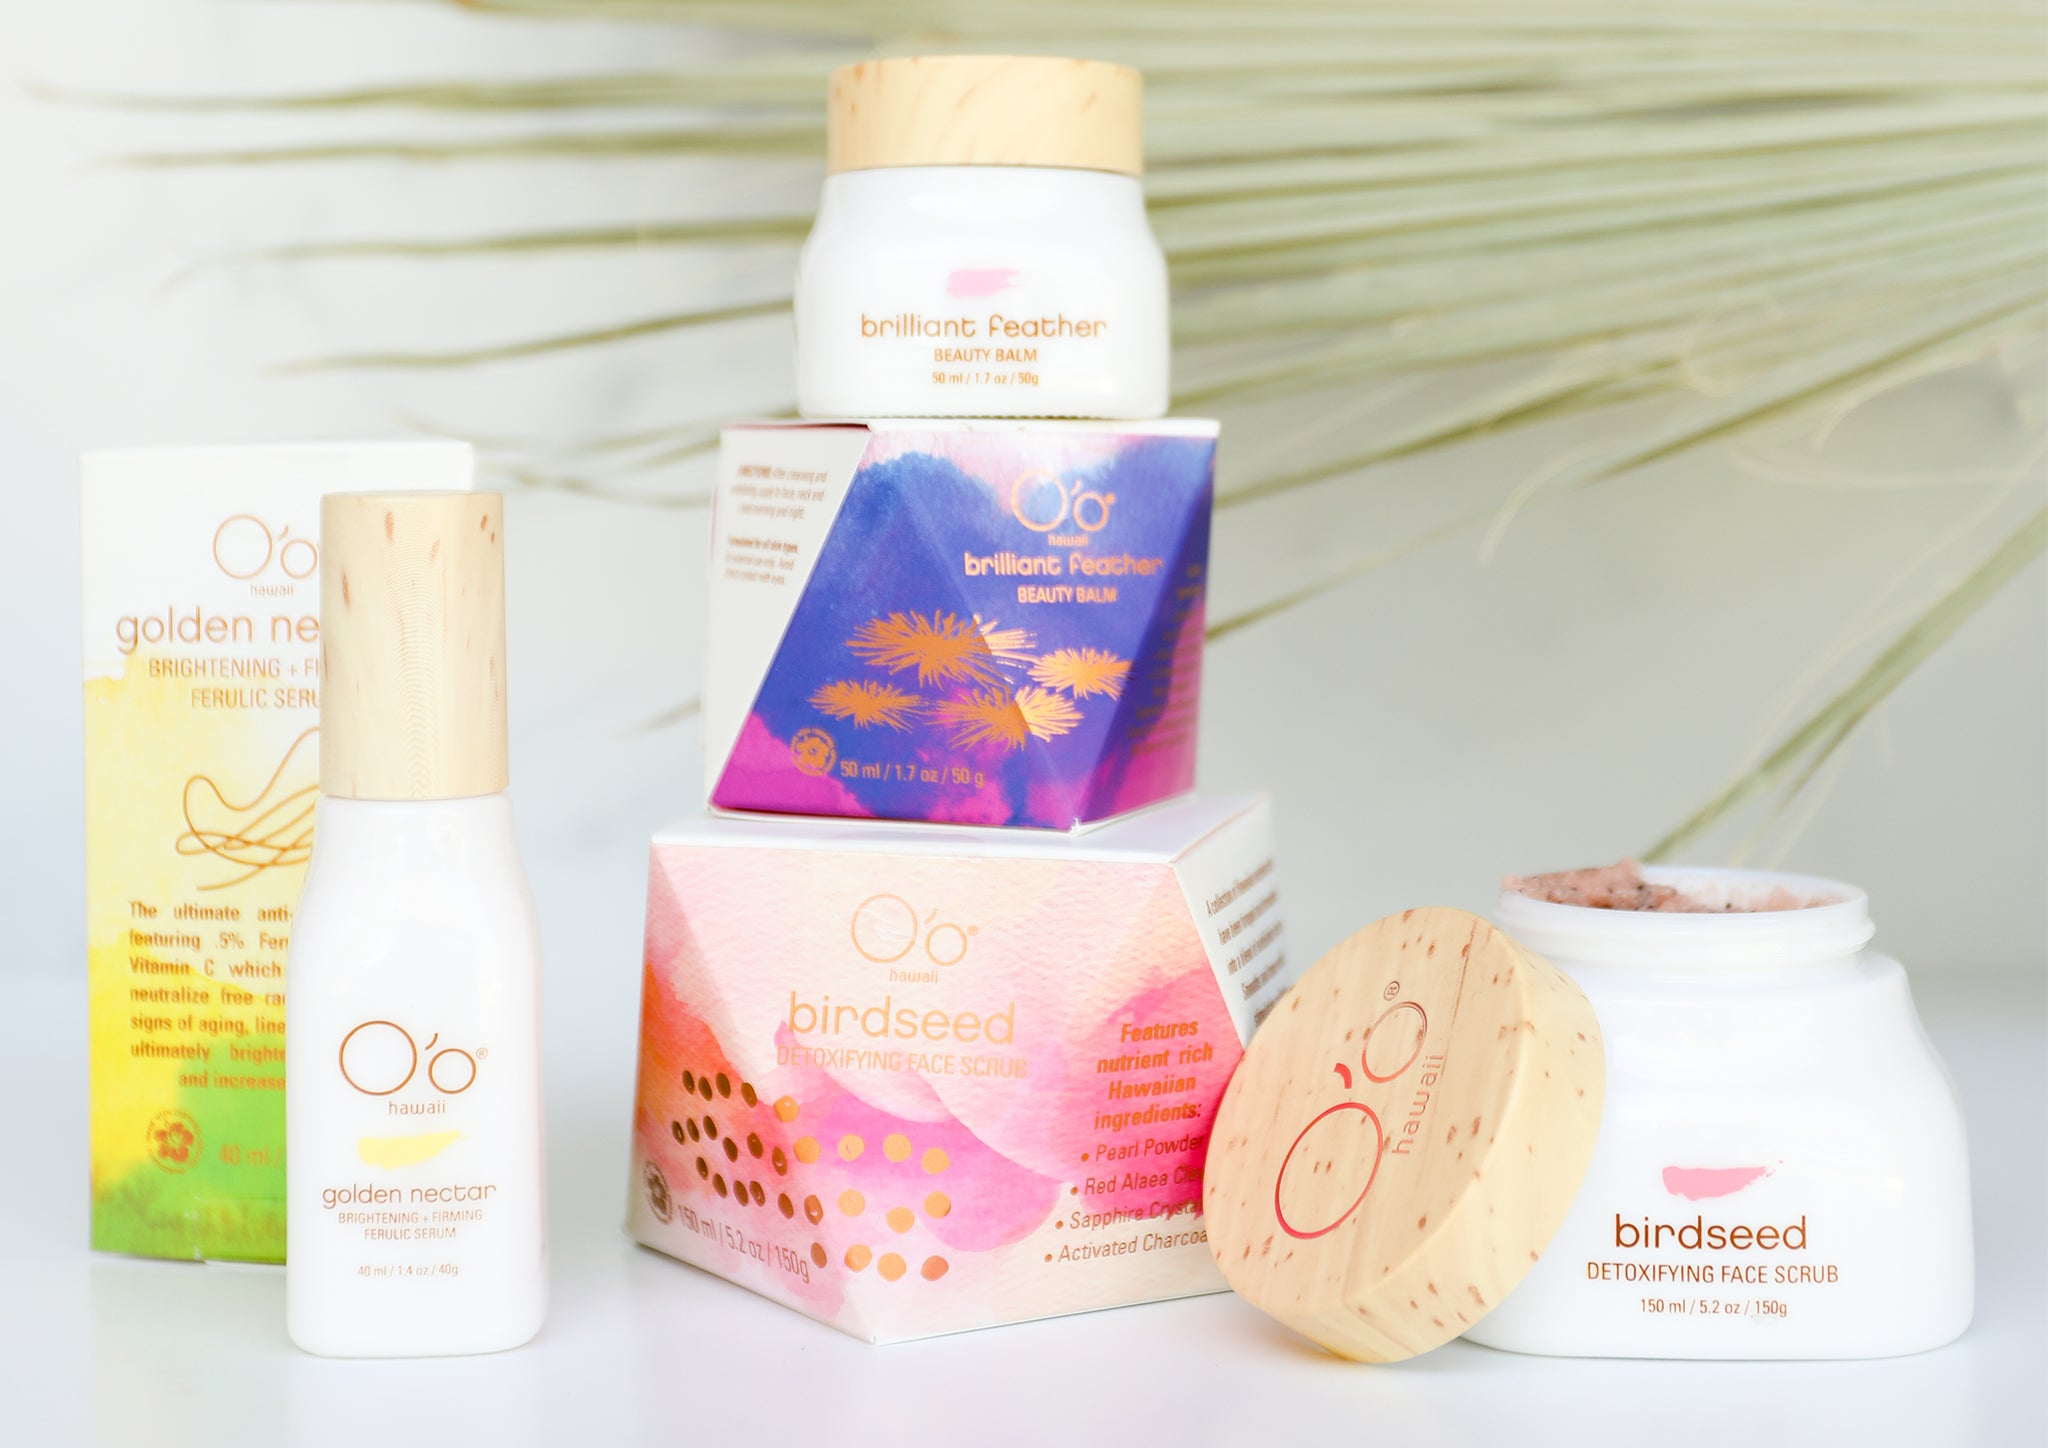 Image of assorted O'o Hawaii beauty and skincare products